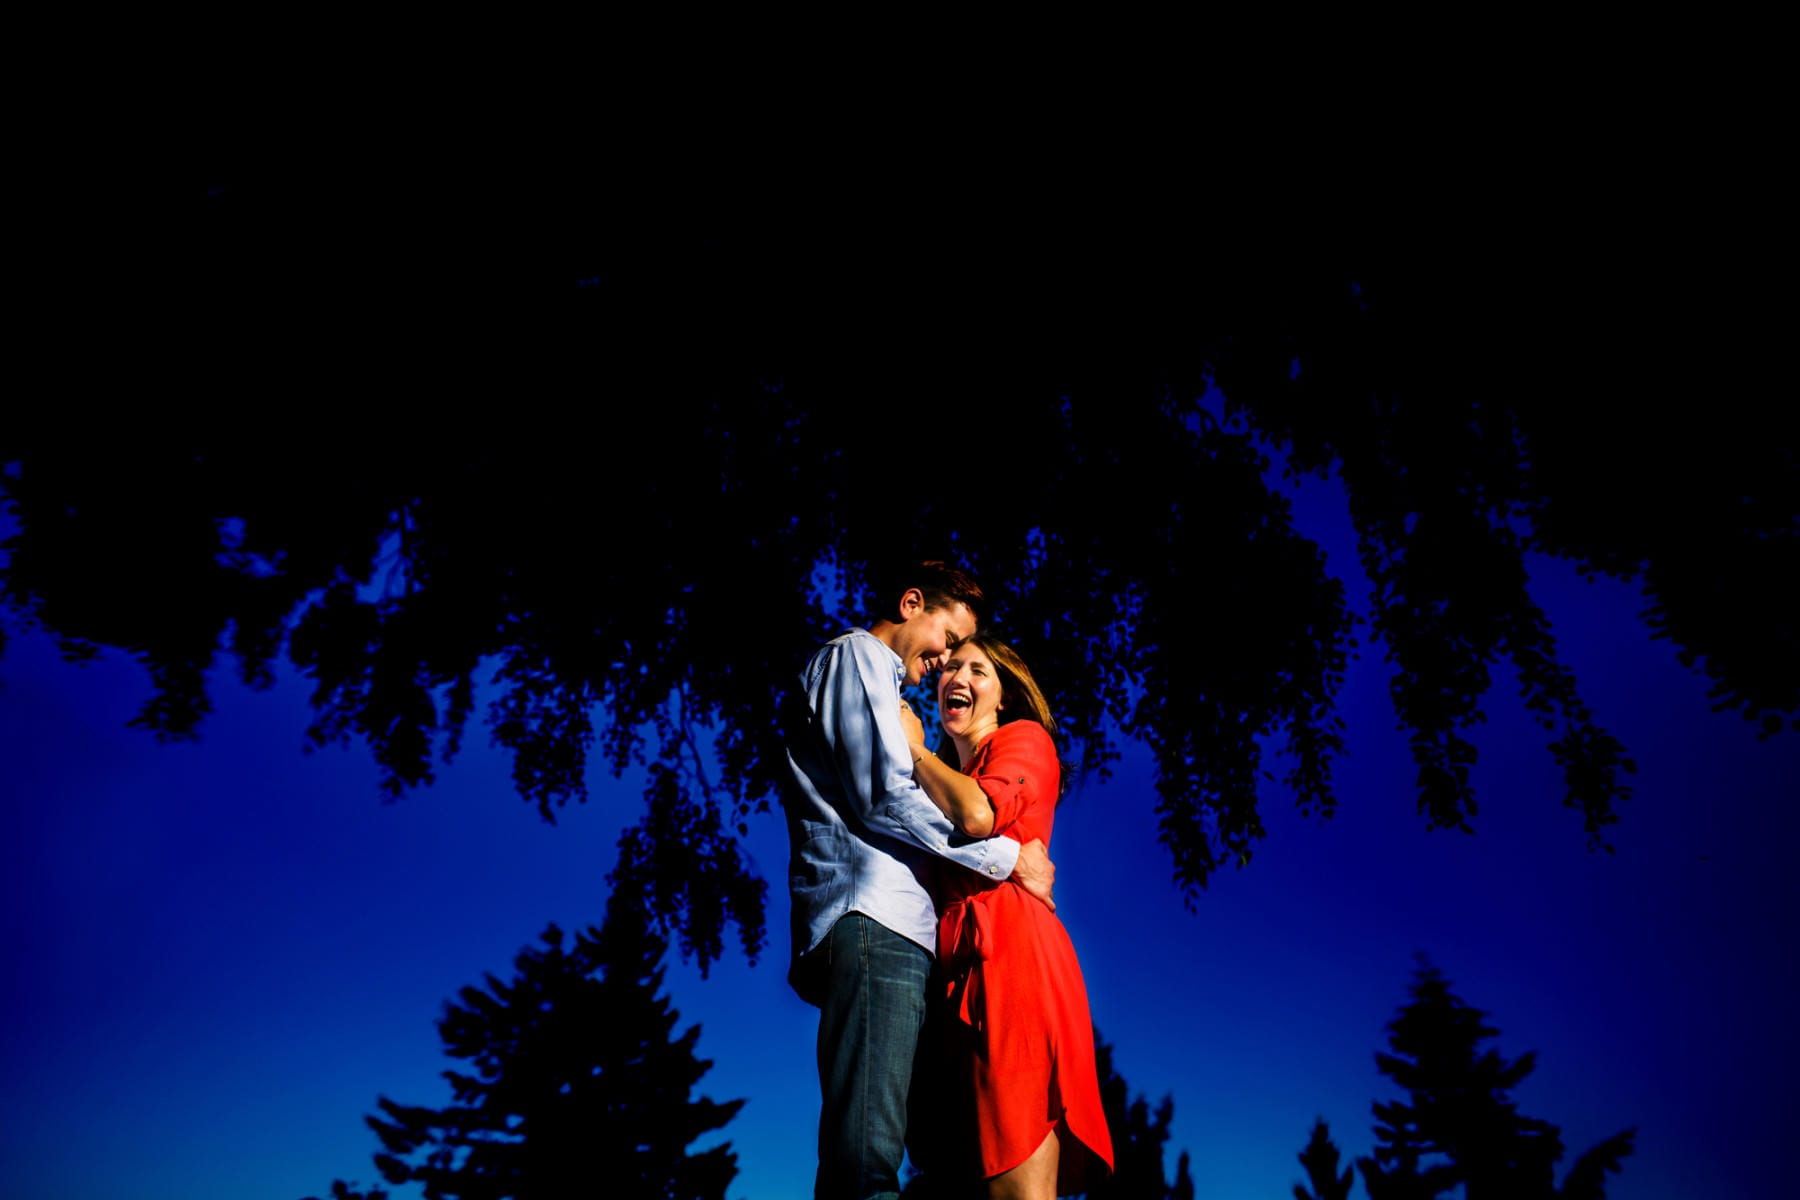 Pittock Mansion Engagement Photo Shoot by Stark Photography (6)